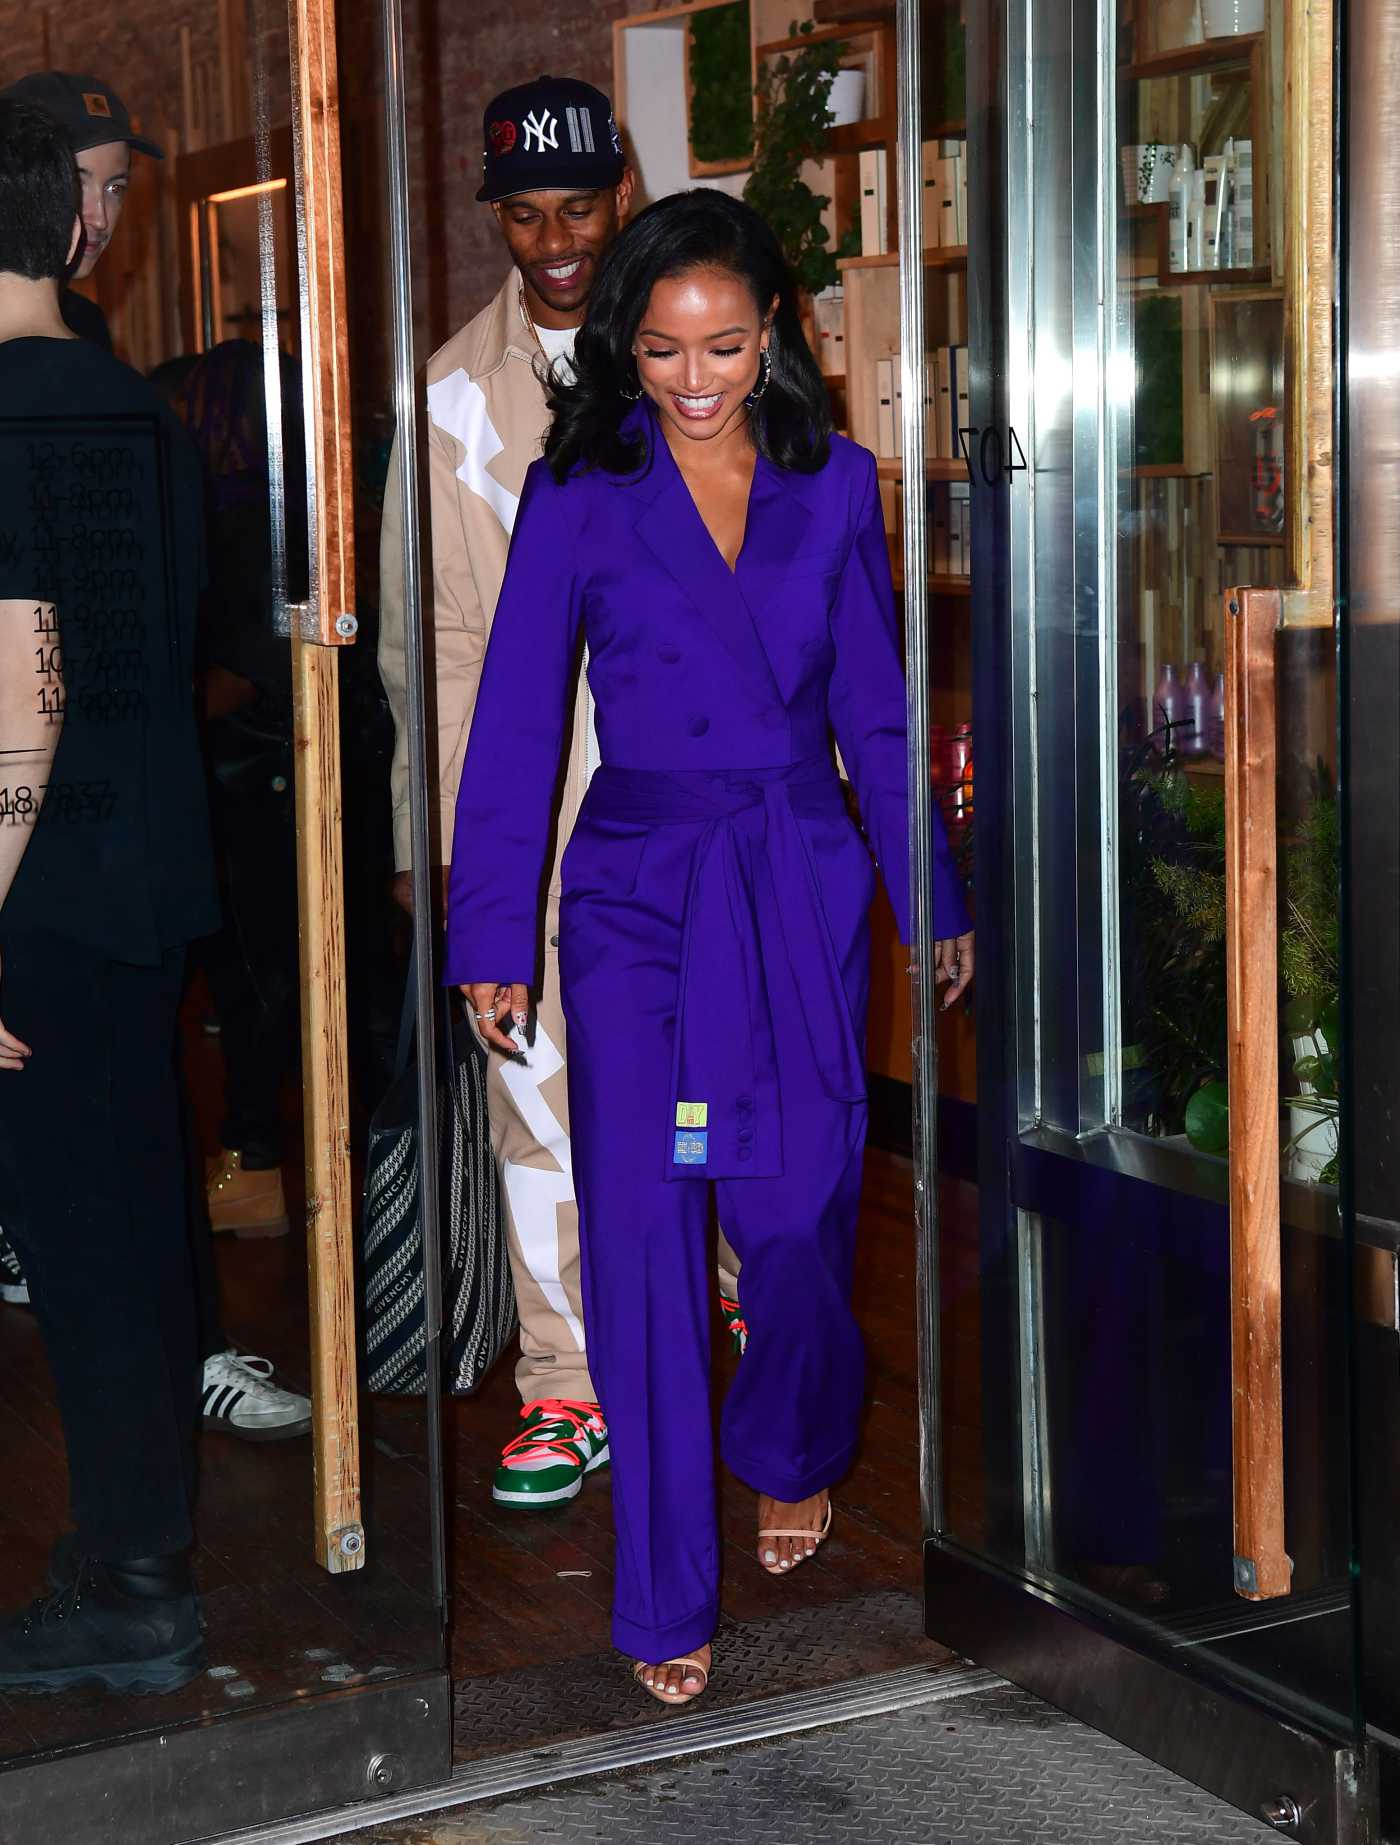 Karrueche Tran in a Purple Suit Films Makeover Show in NYC 02/06/2020